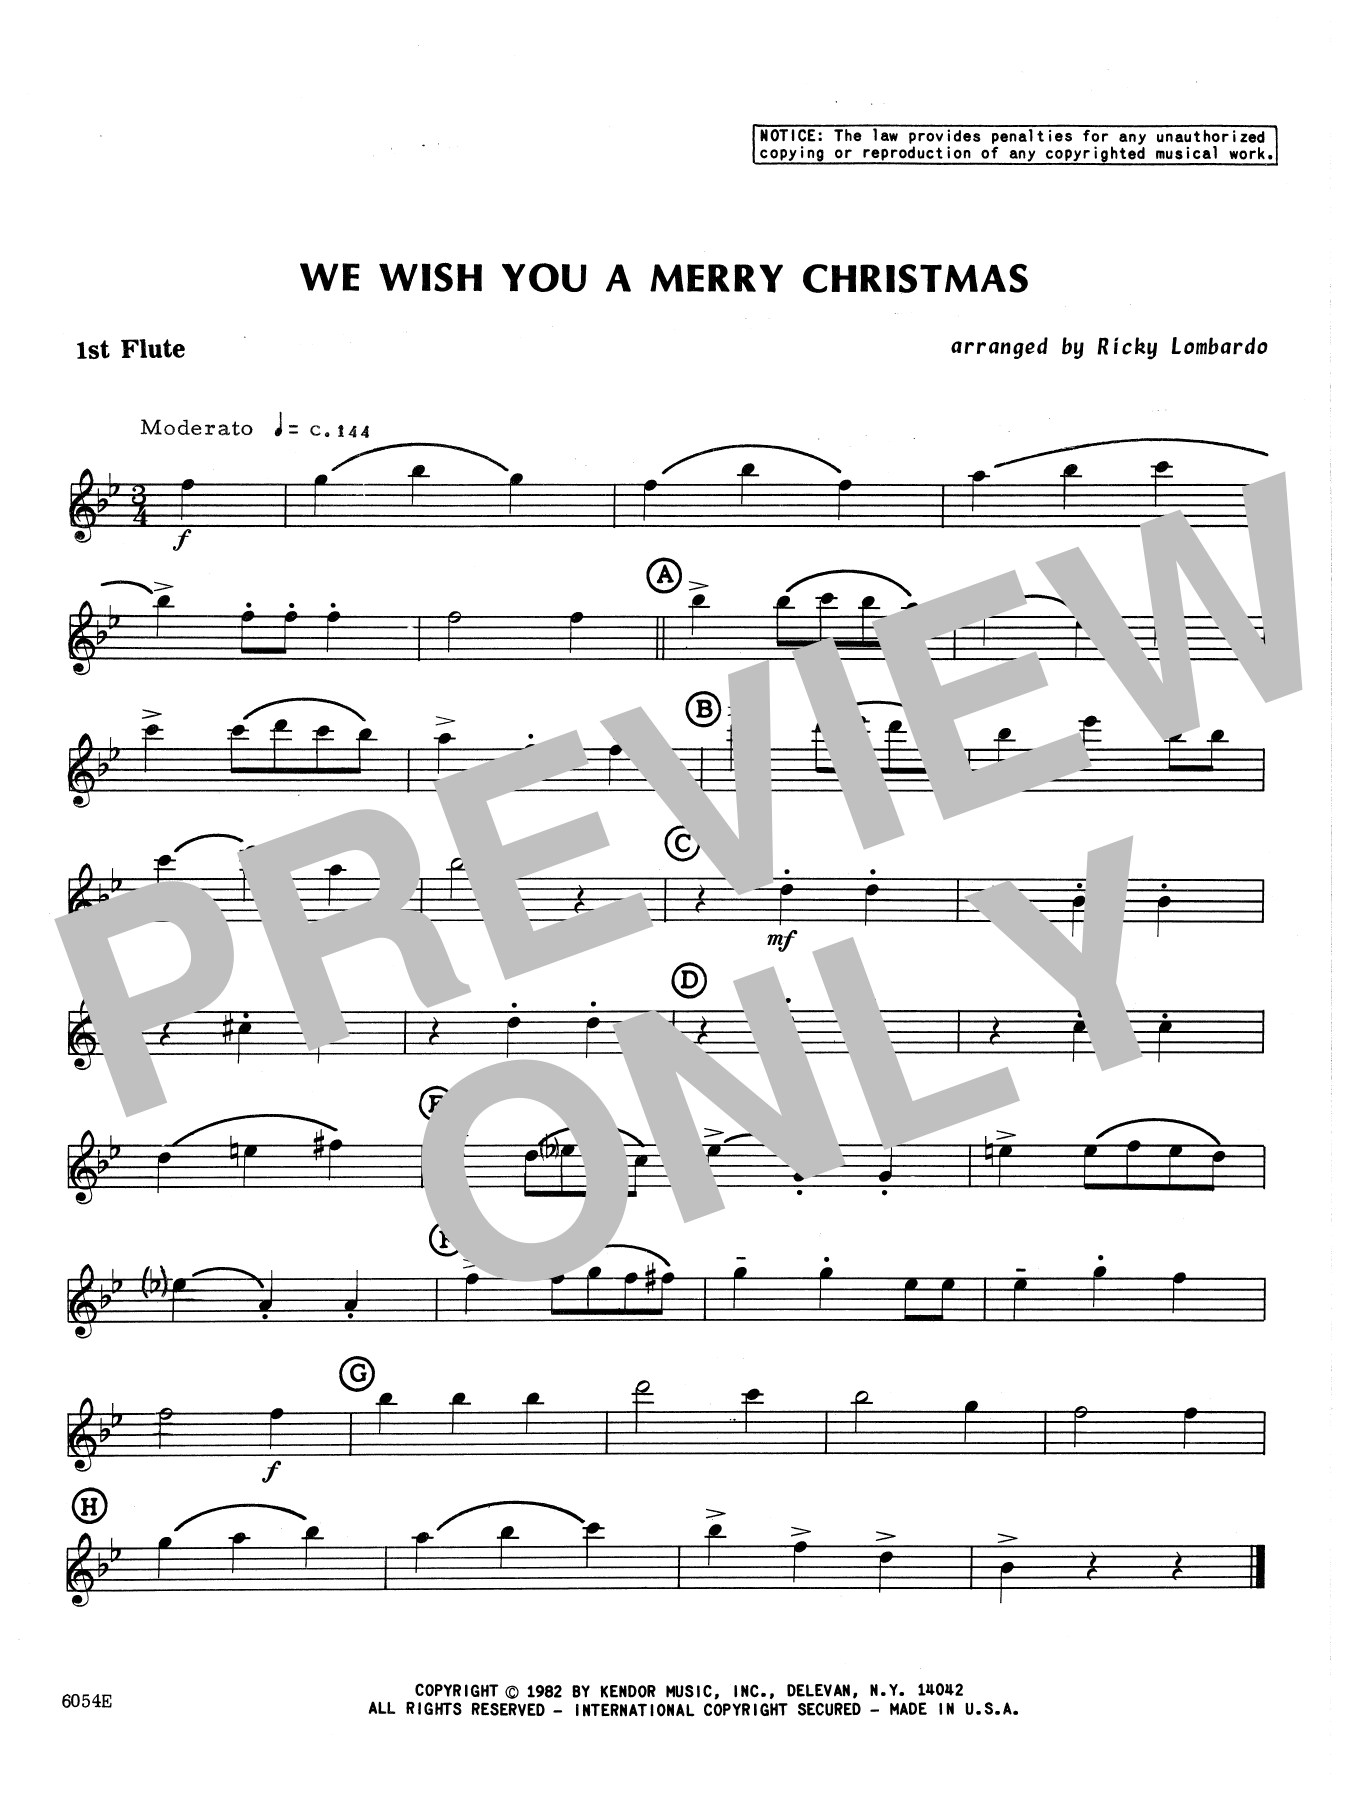 We Wish You A Merry Christmas - 1st Flute Sheet Music